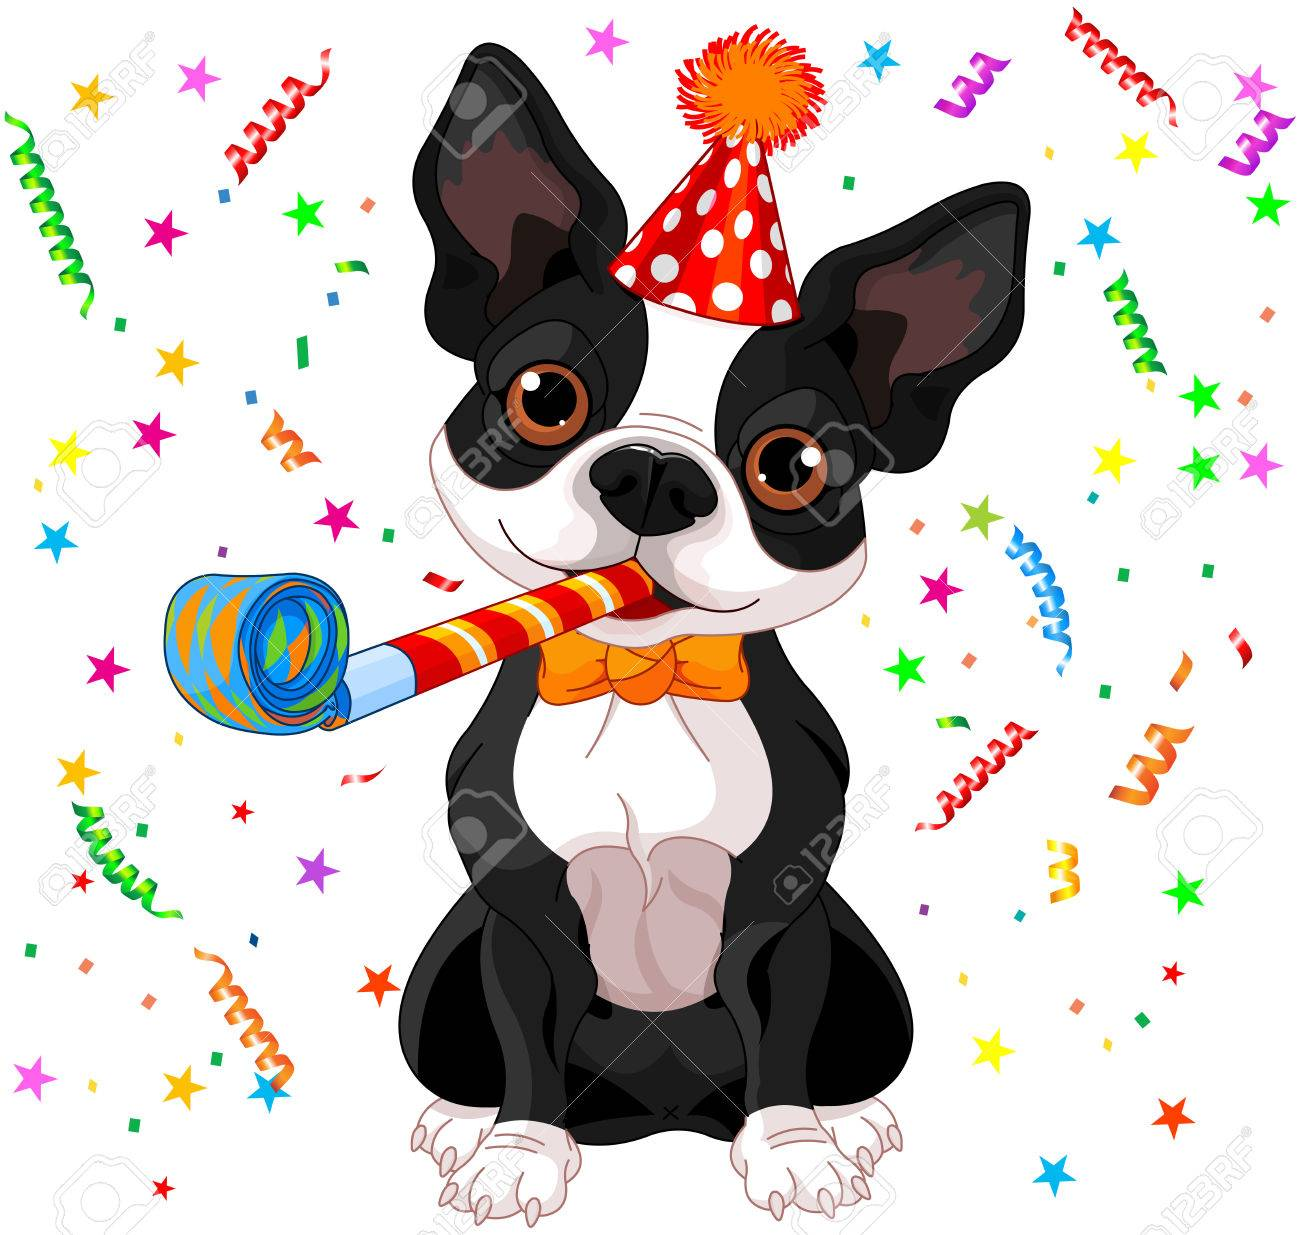 Altercation entre chiens: laisser faire ou pas? - Page 2 35588778-illustration-of-cute-boston-terrier-celebrating